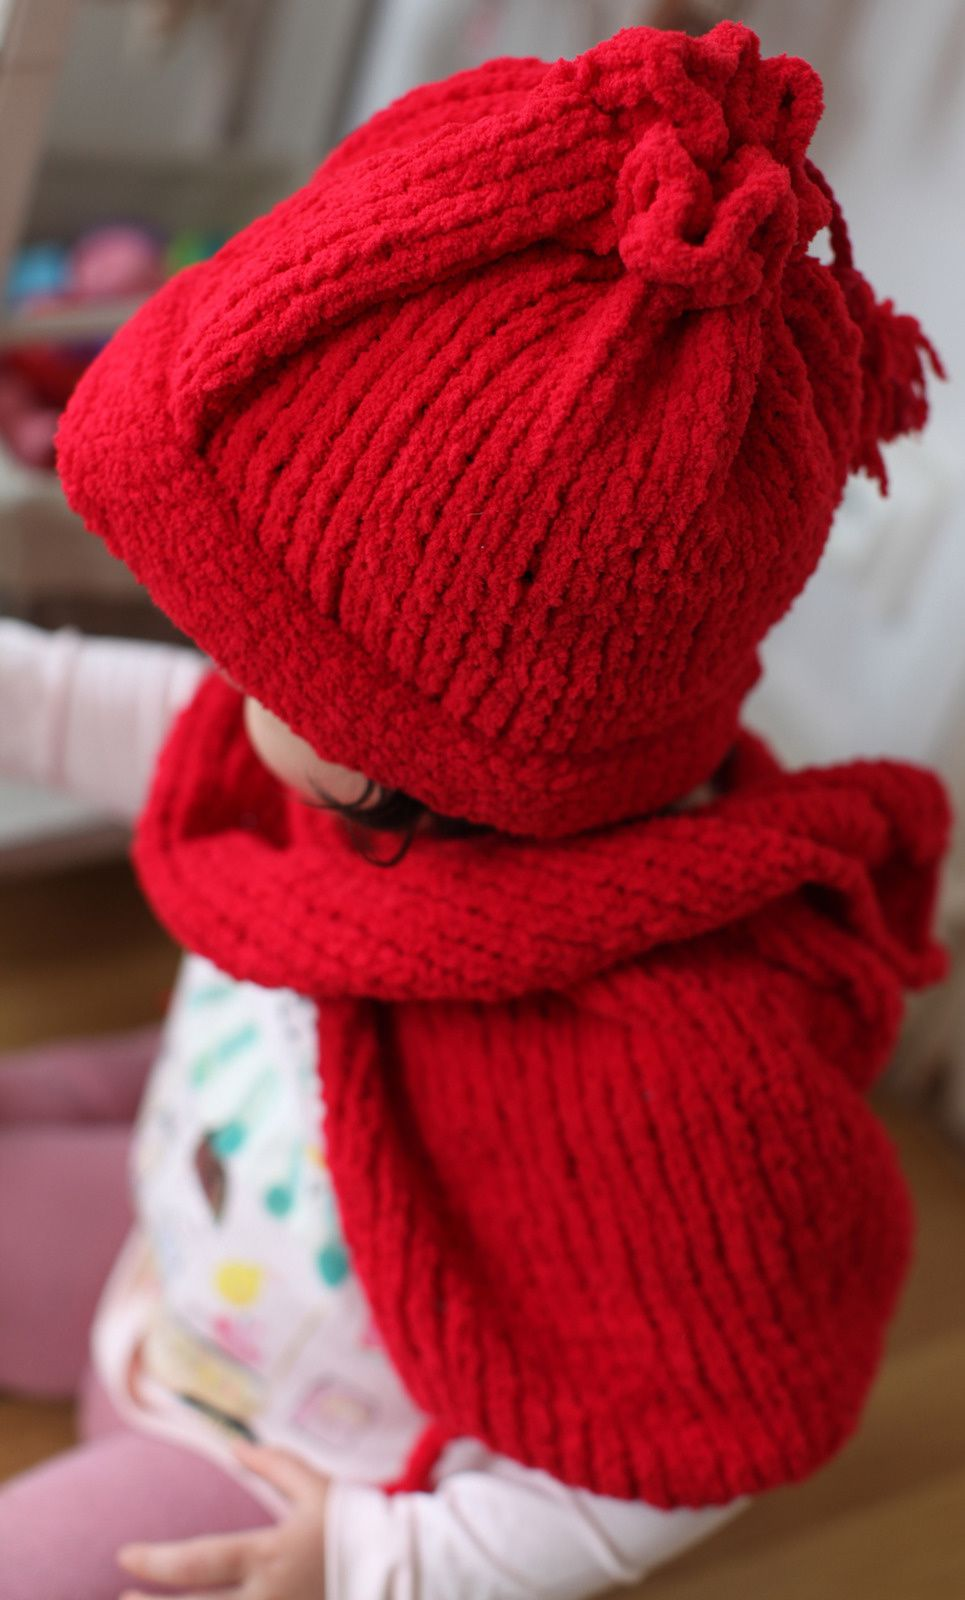 Red whool scarf-poncho and assorted hat